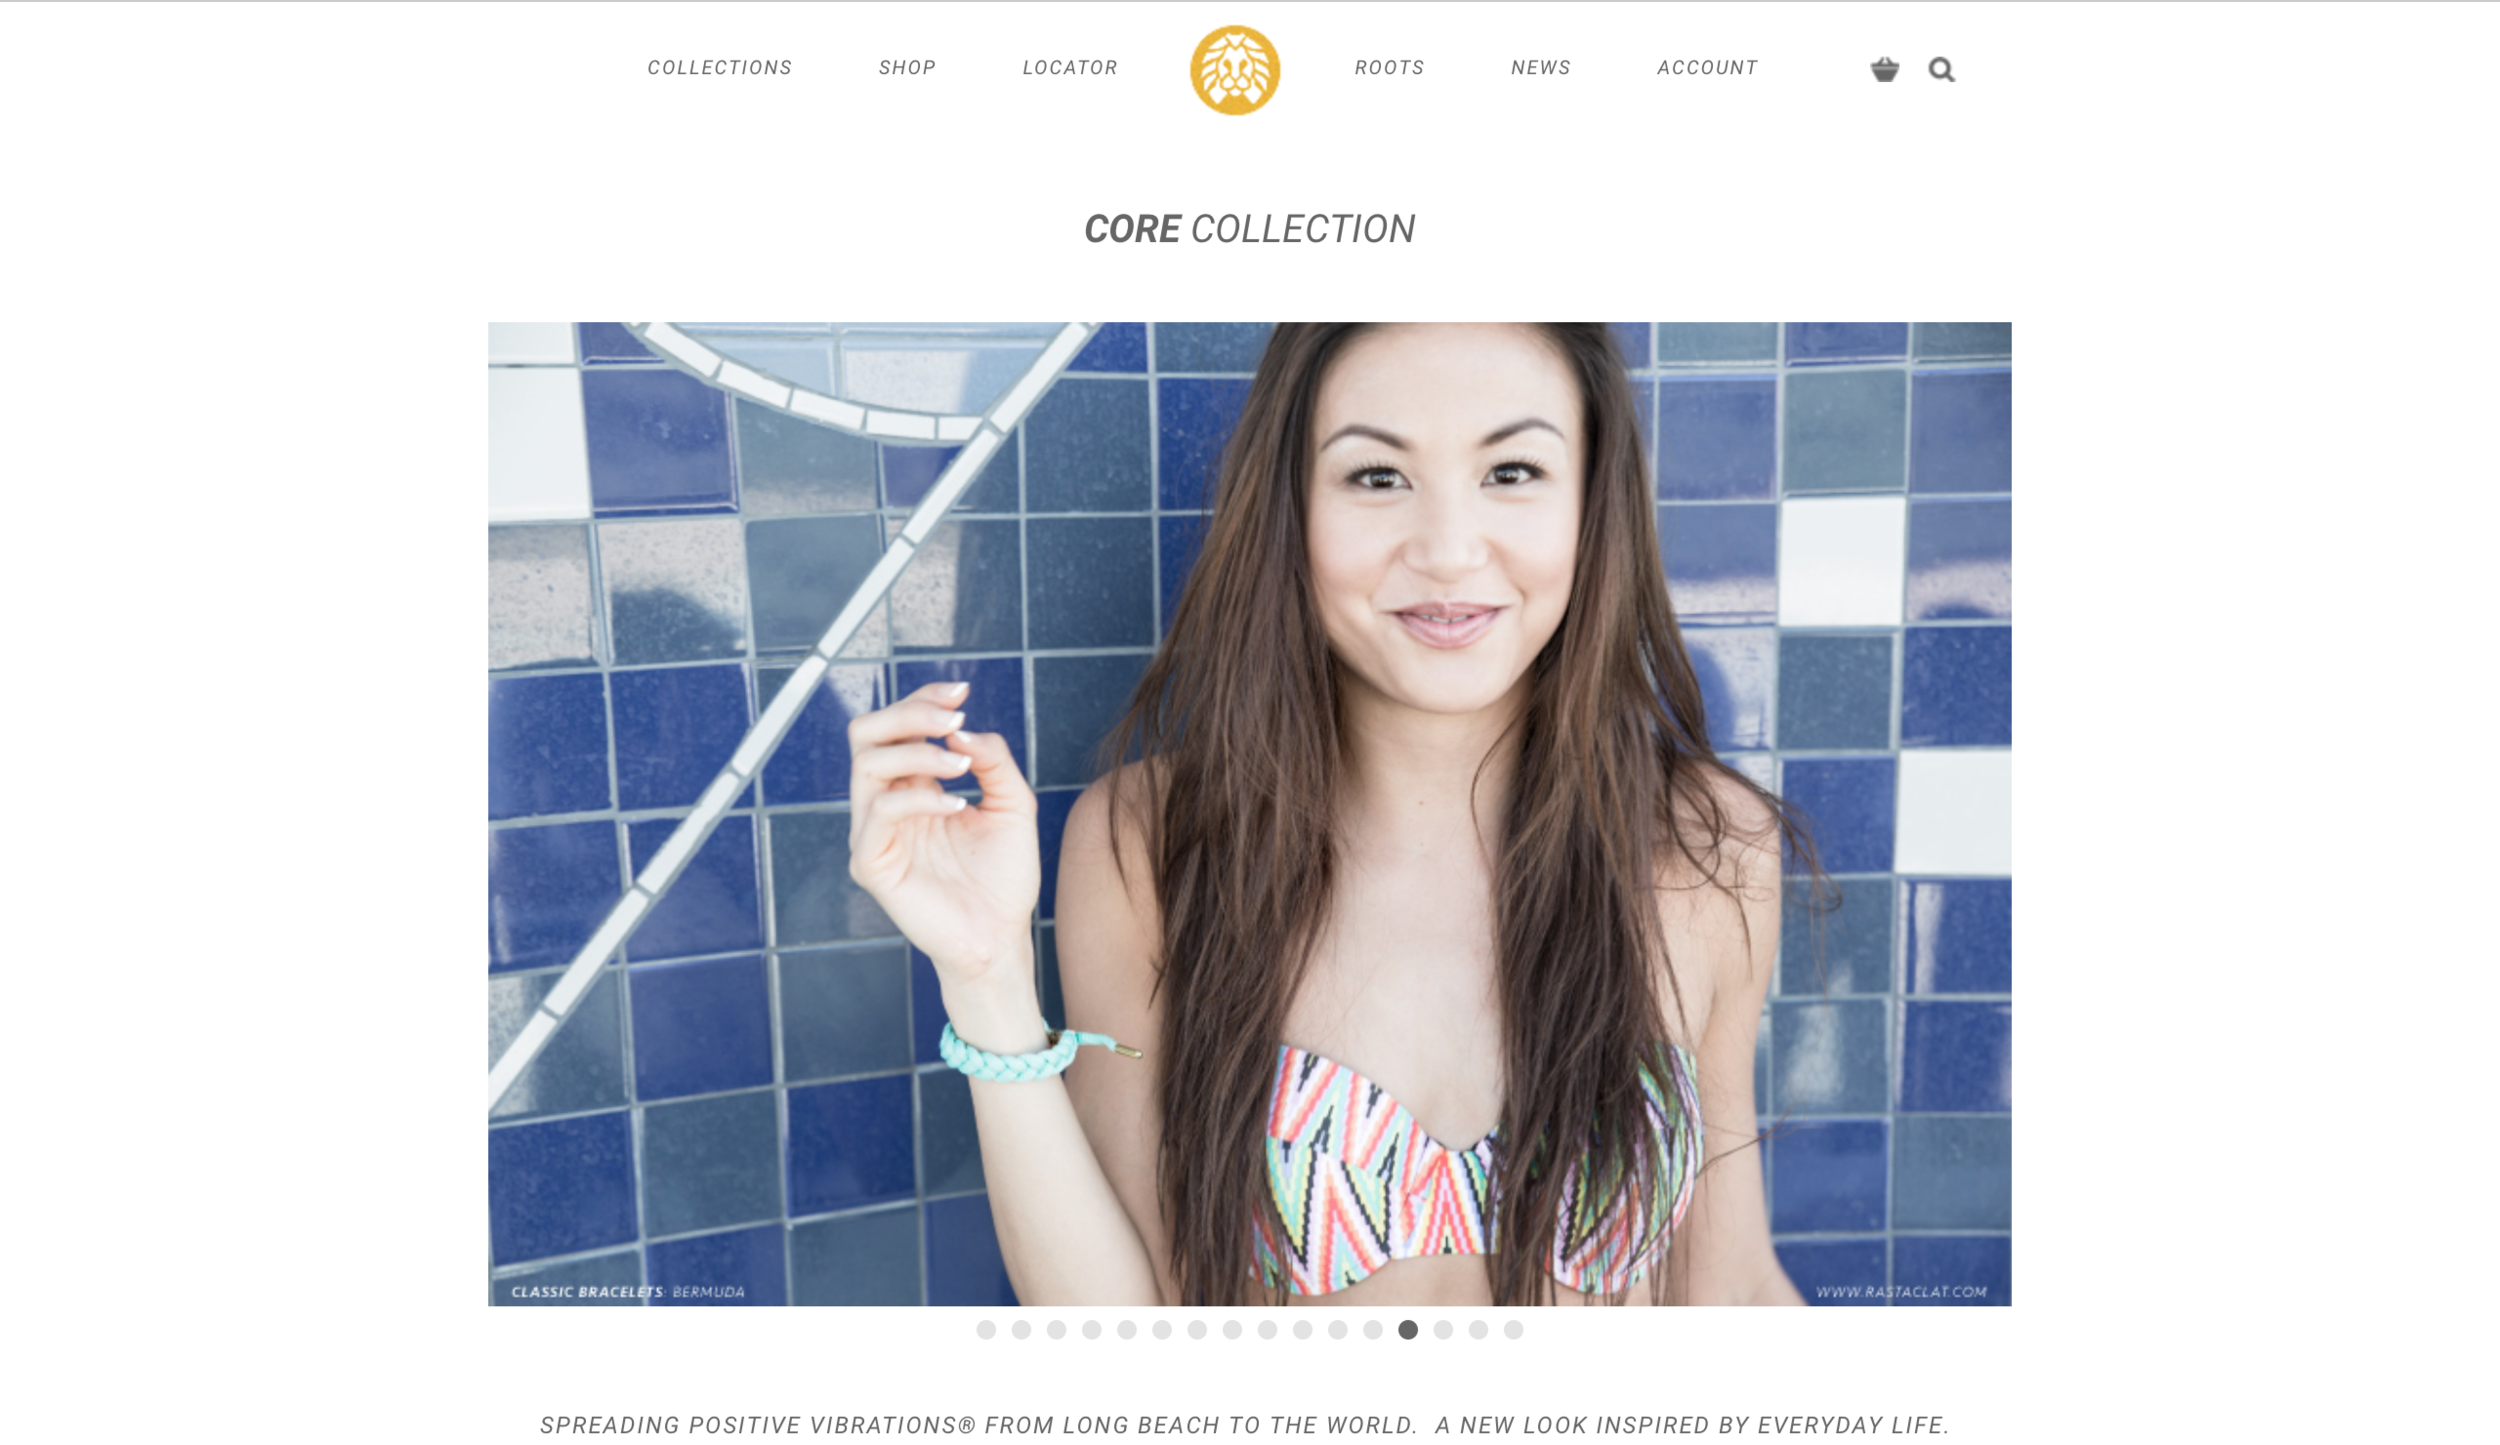 2. Lynhthy - Rastaclat Core Collection (Web).png